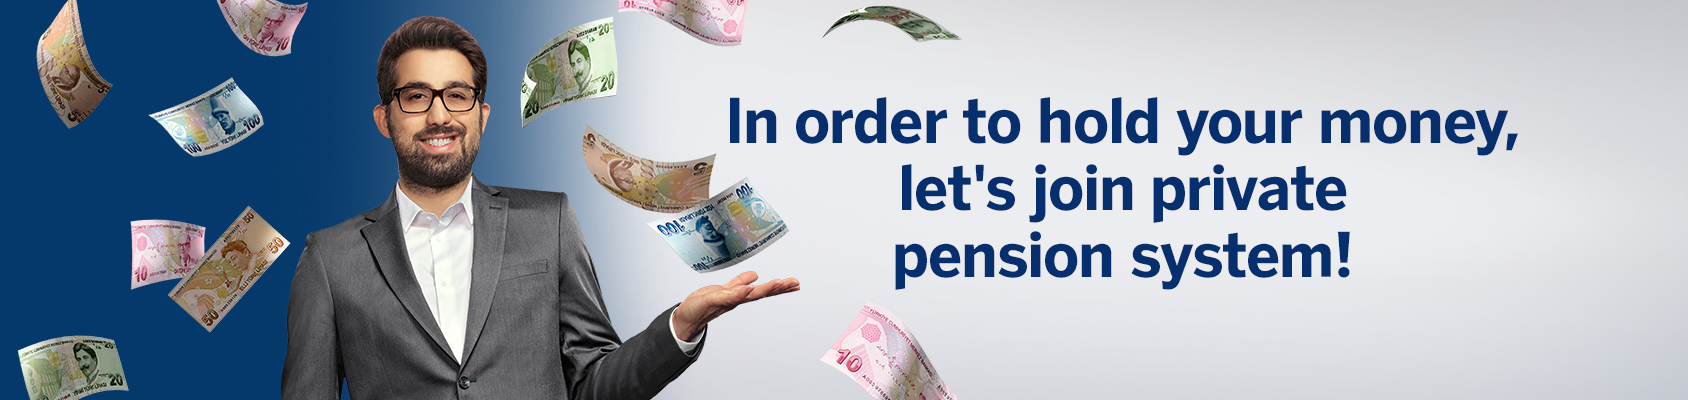 In order to hold your  money, let's join private pension system!